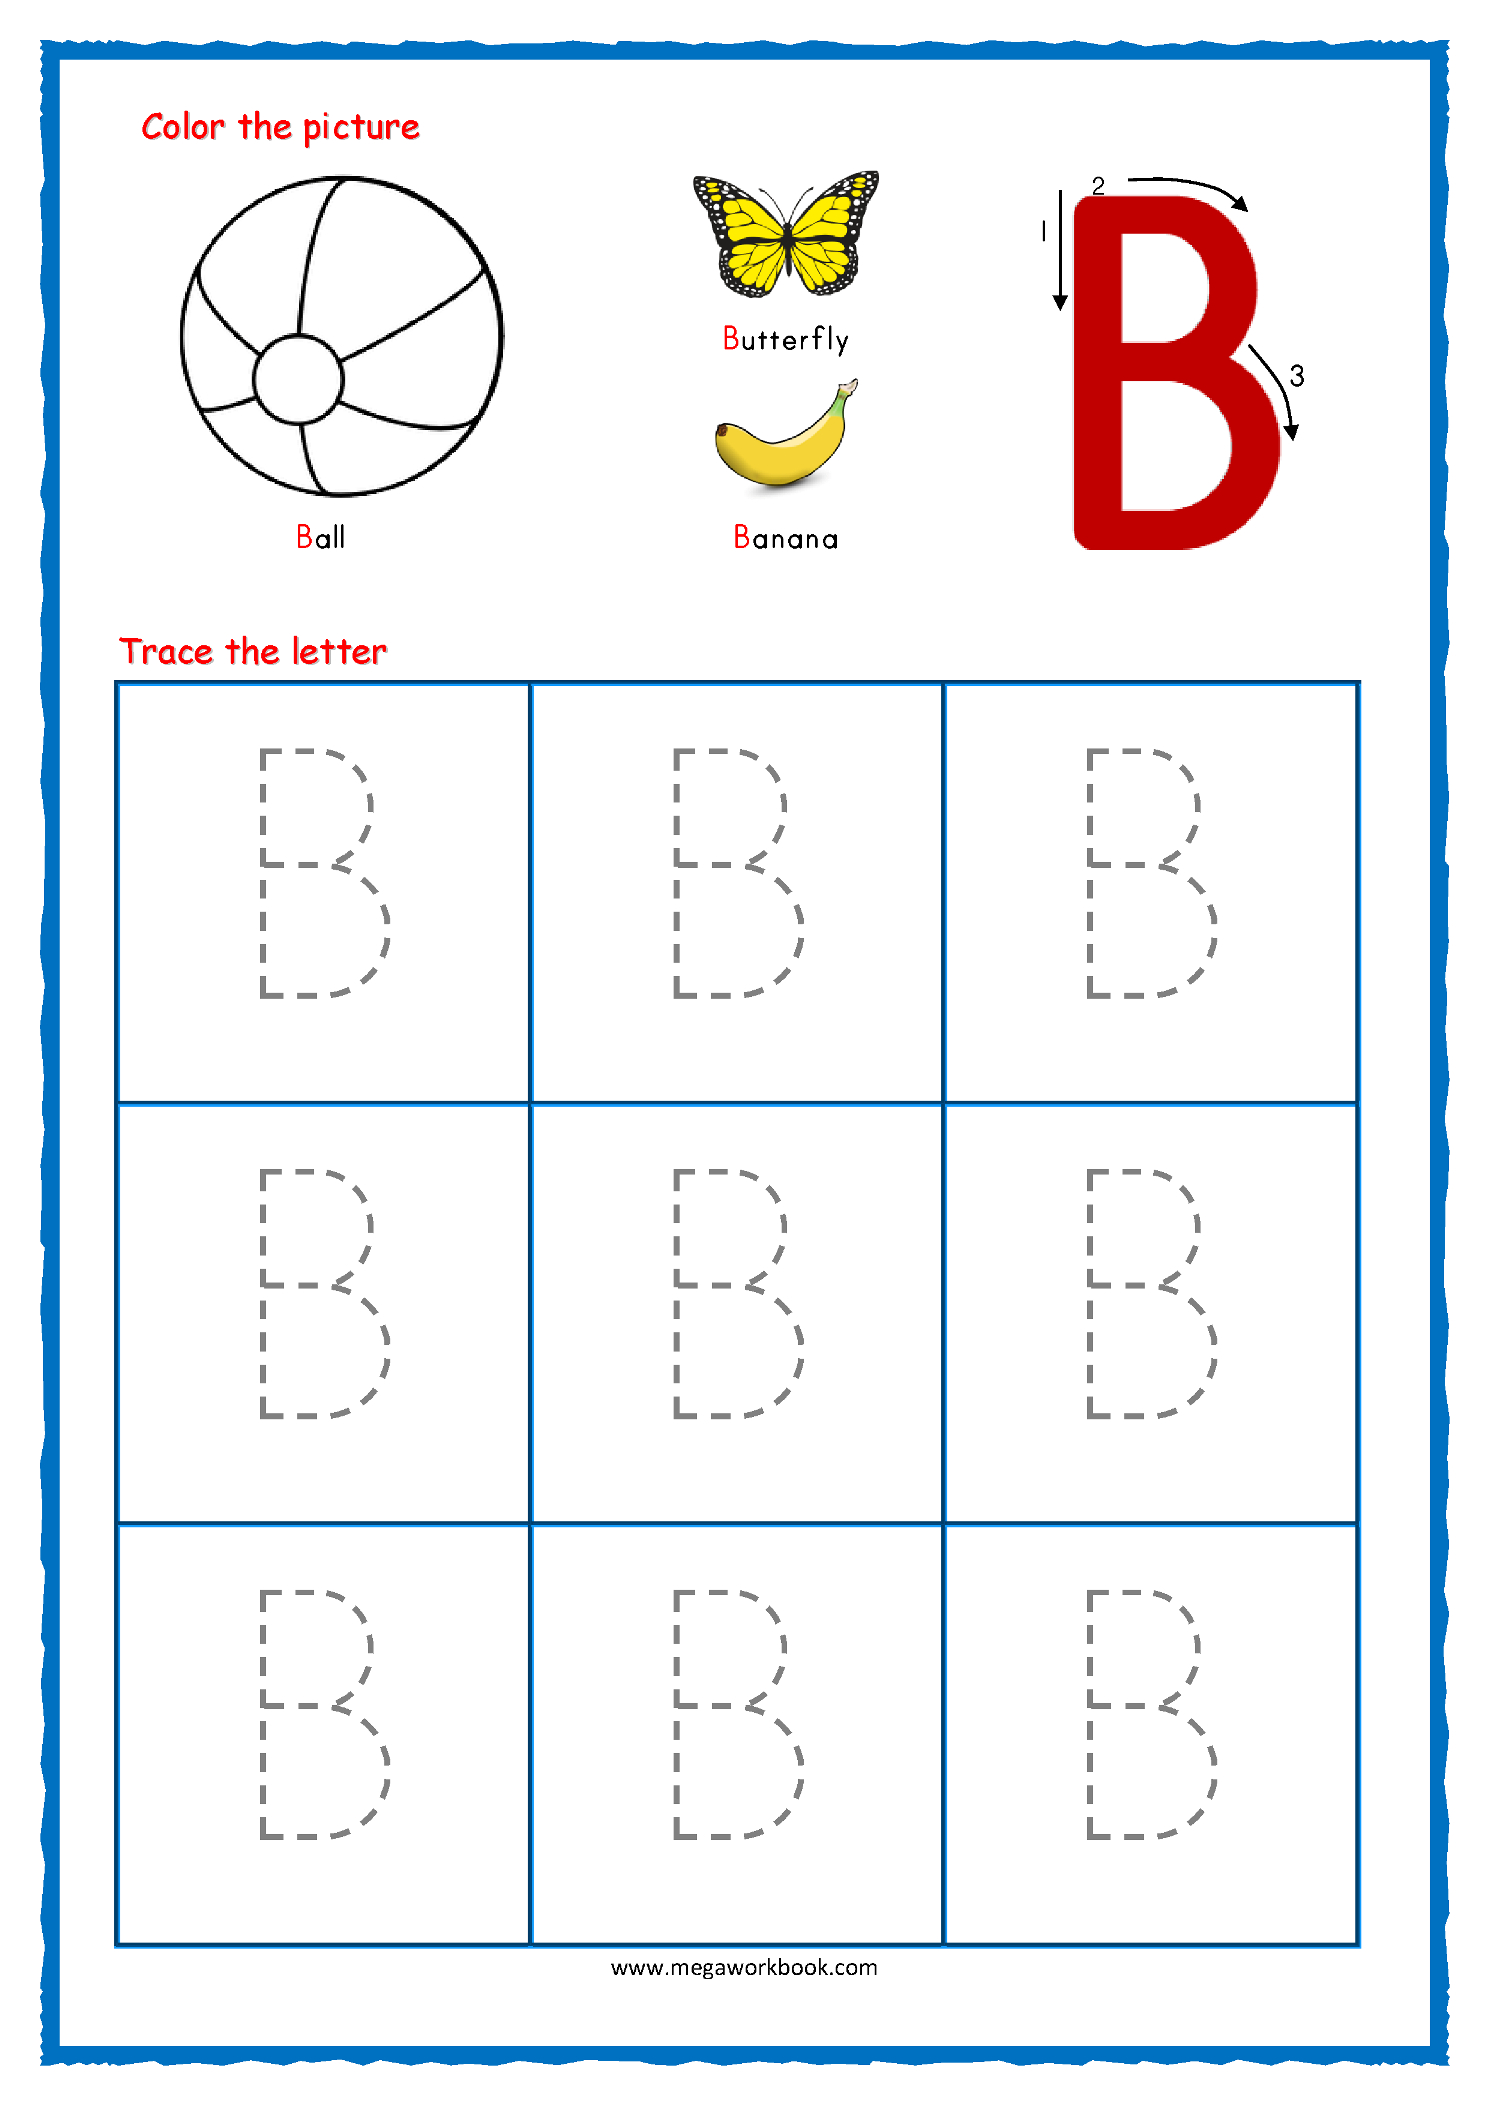 Coloring Book : Letter Tracingts Free Printable Coloring intended for Tracing Letter A Worksheets Printable